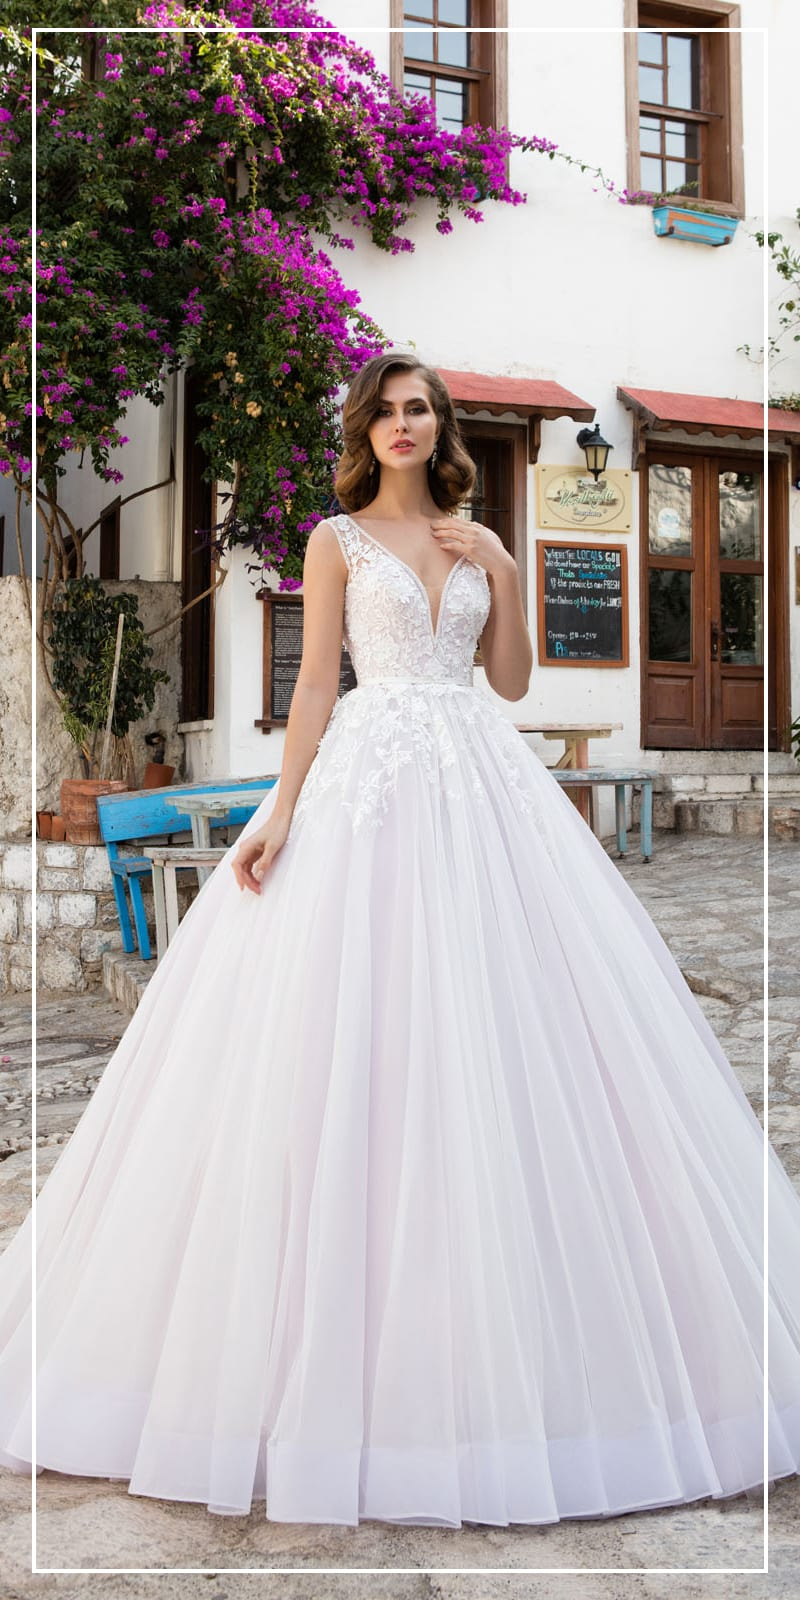 Home 2017 diamond bridal gallery for Wedding dress alterations roseville ca